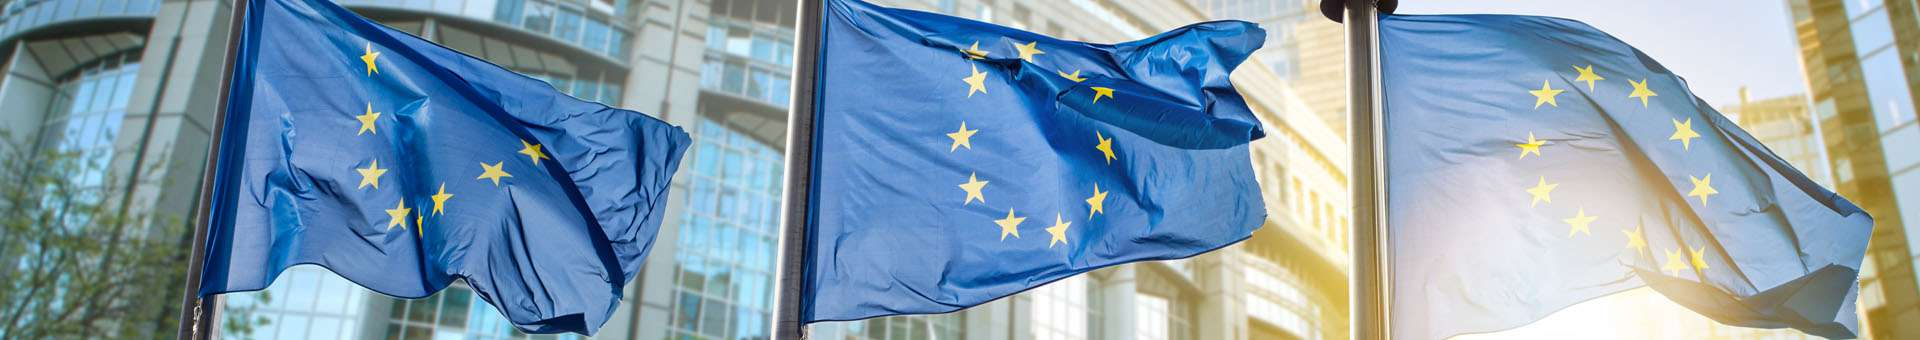 Search Whois information of domain names in European Union